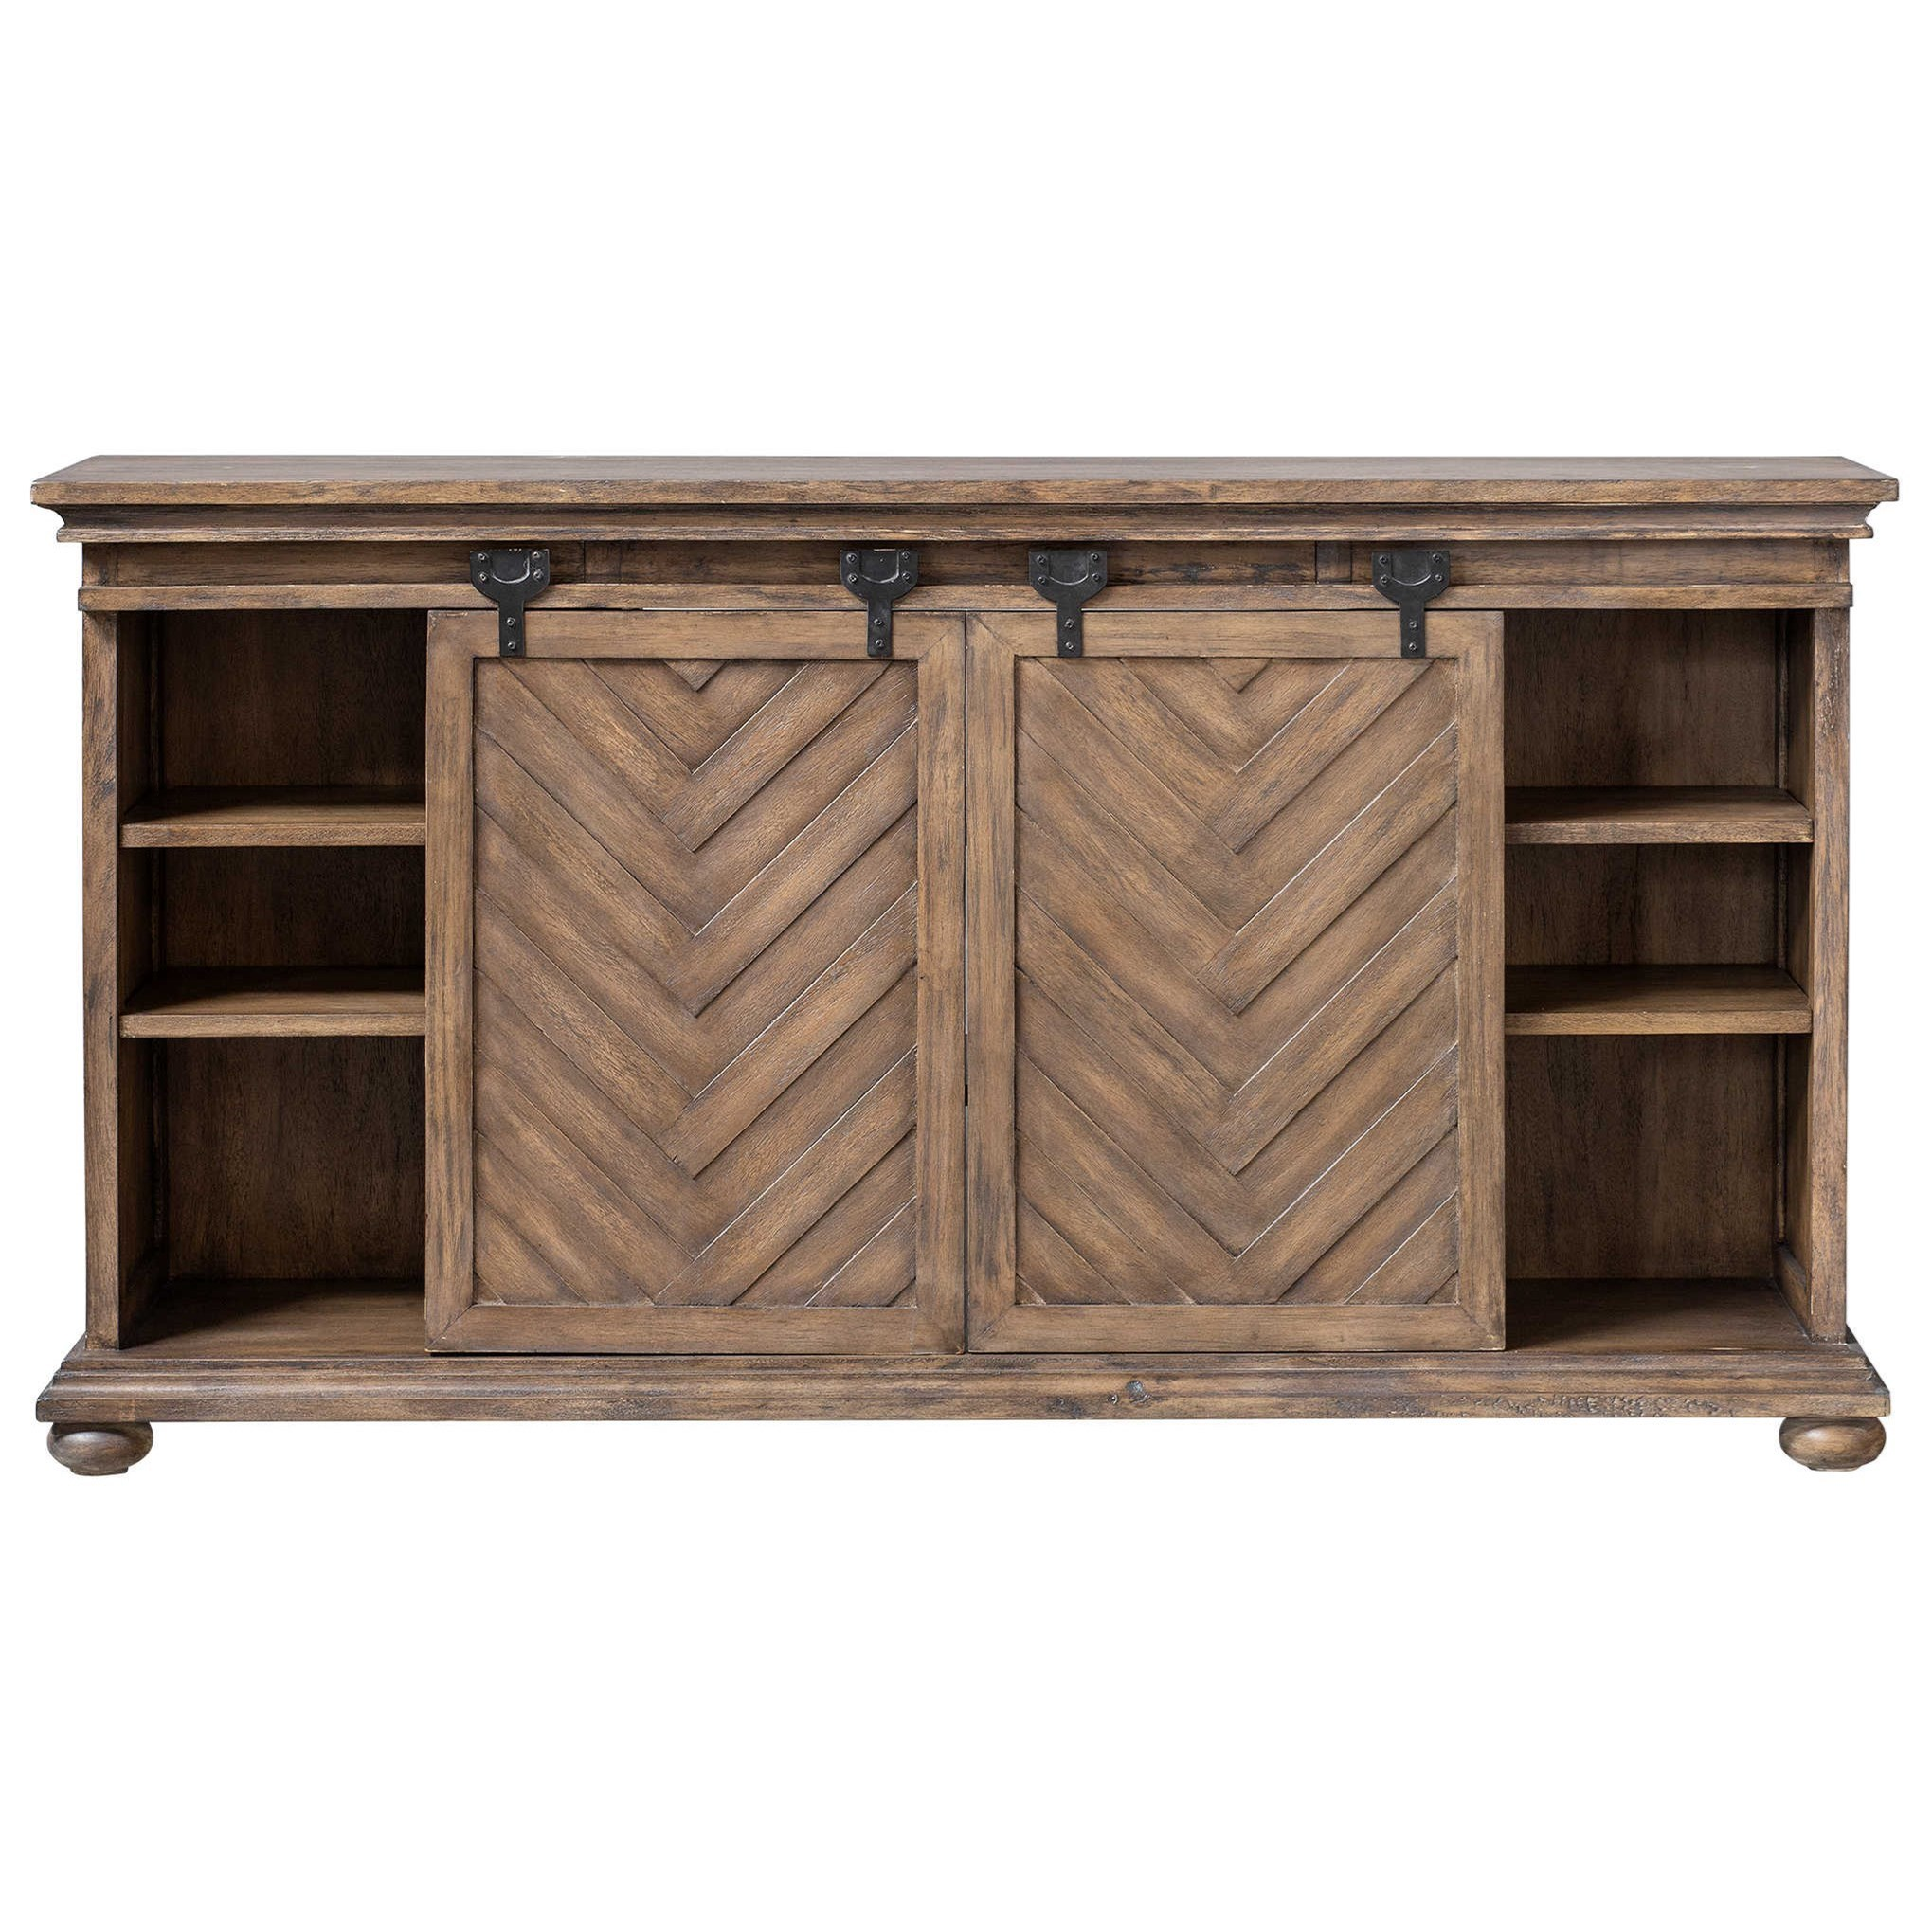 Accent Furniture Primalia Barn Door Media Console by Uttermost at Furniture Superstore - Rochester, MN